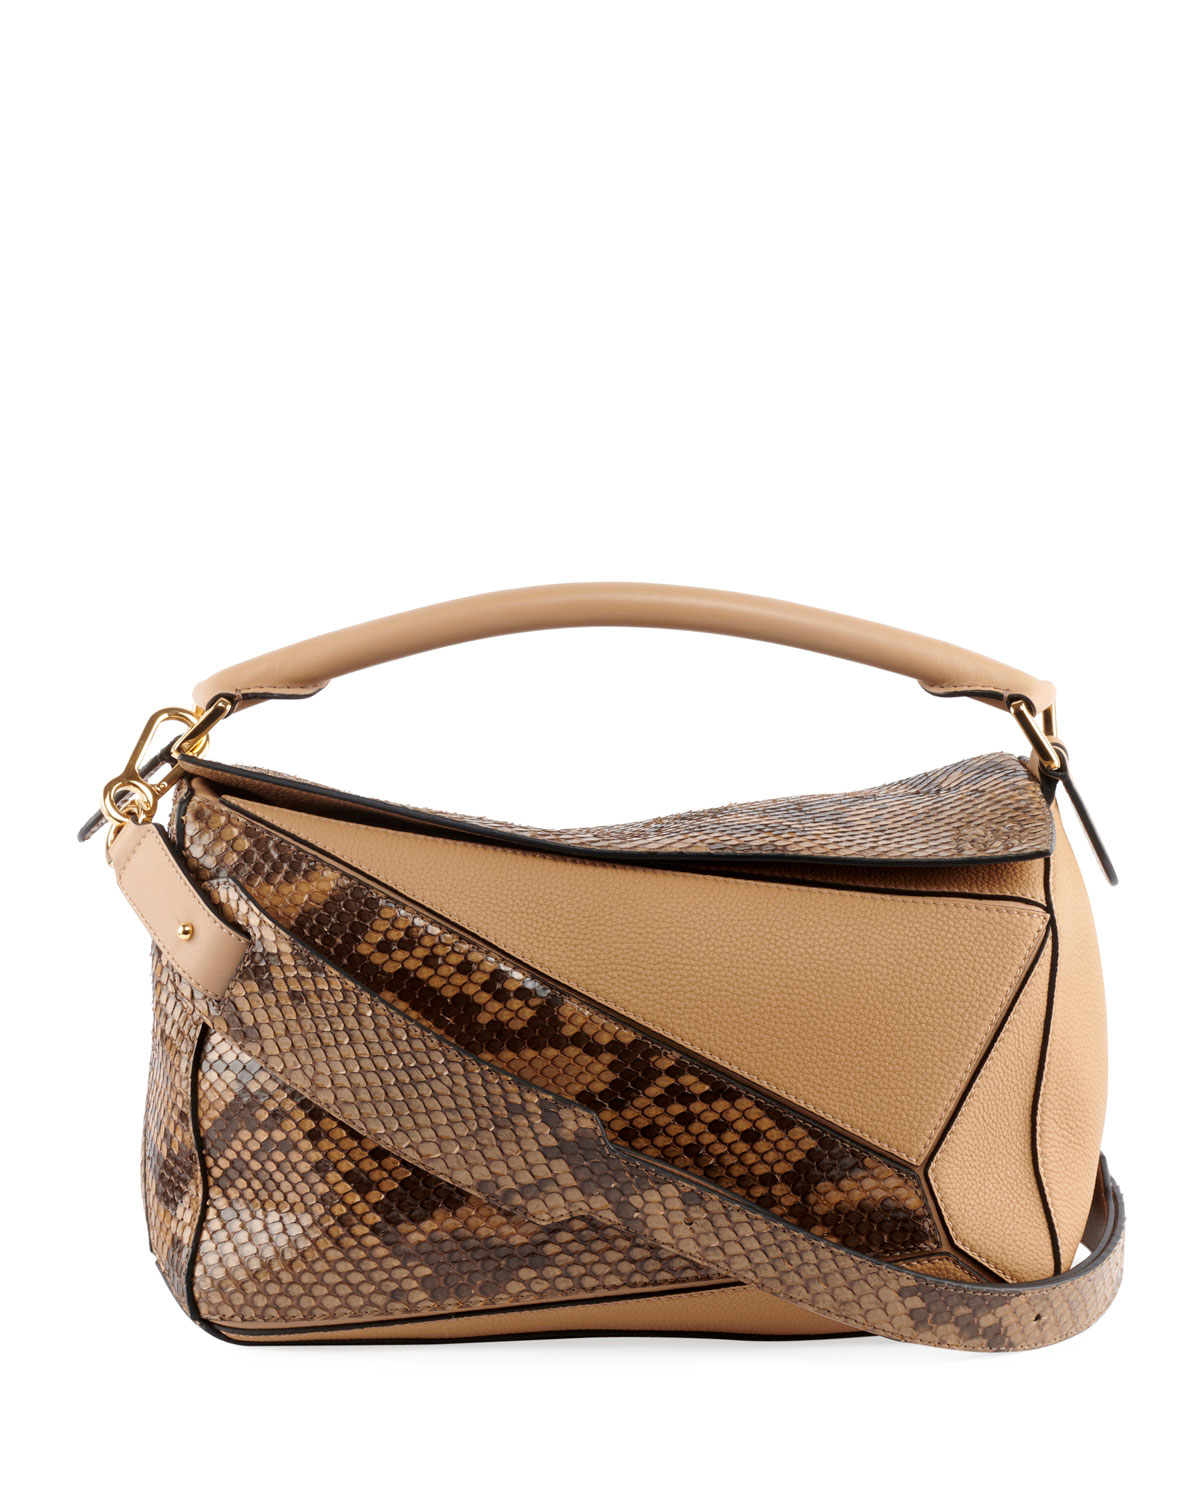 Loewe Puzzle Colorblock Python and Leather Bag  495b3d4941710